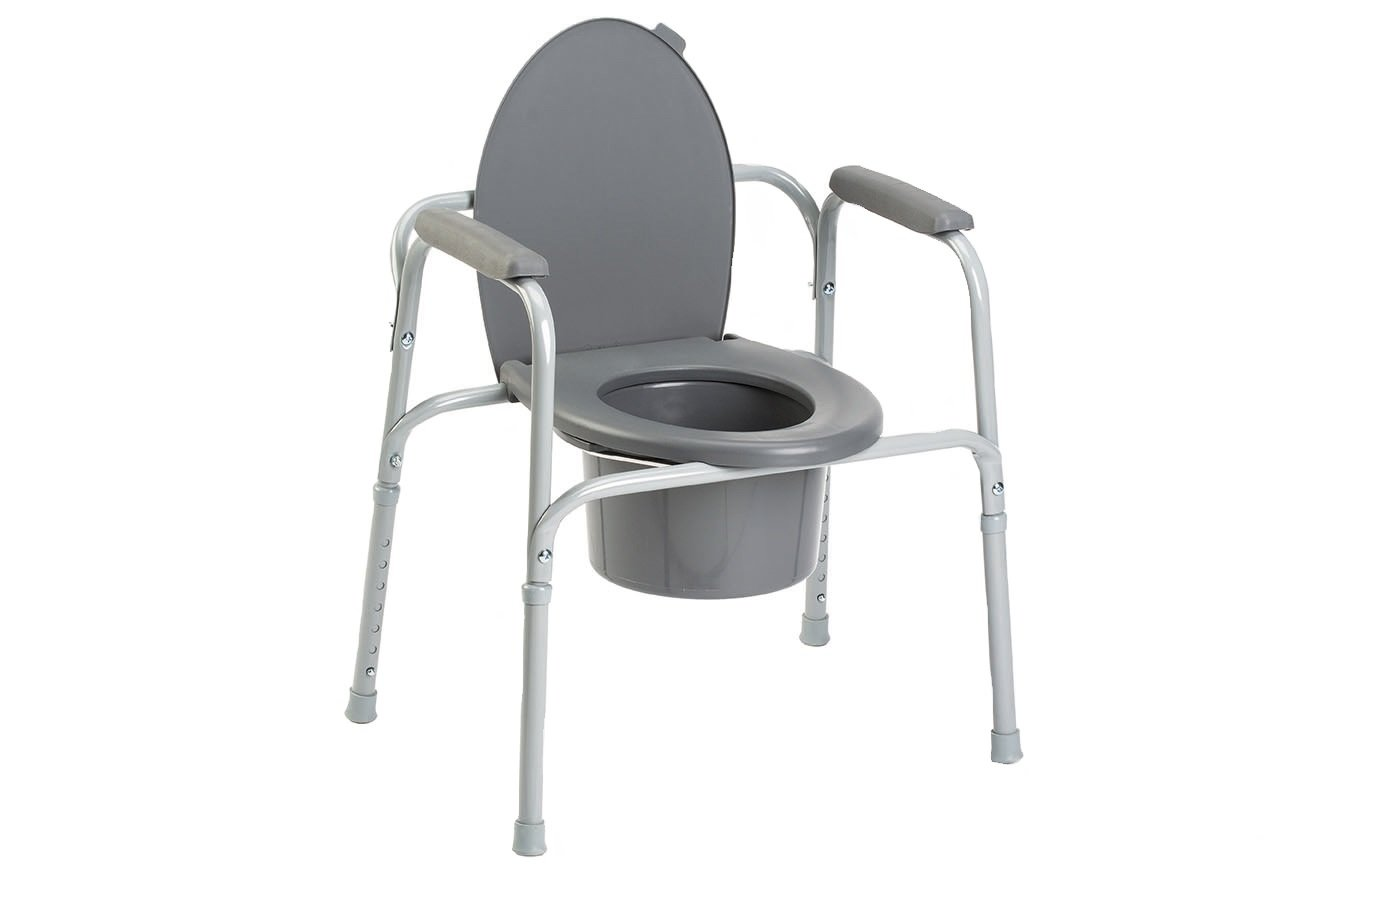 All-In-One Commode